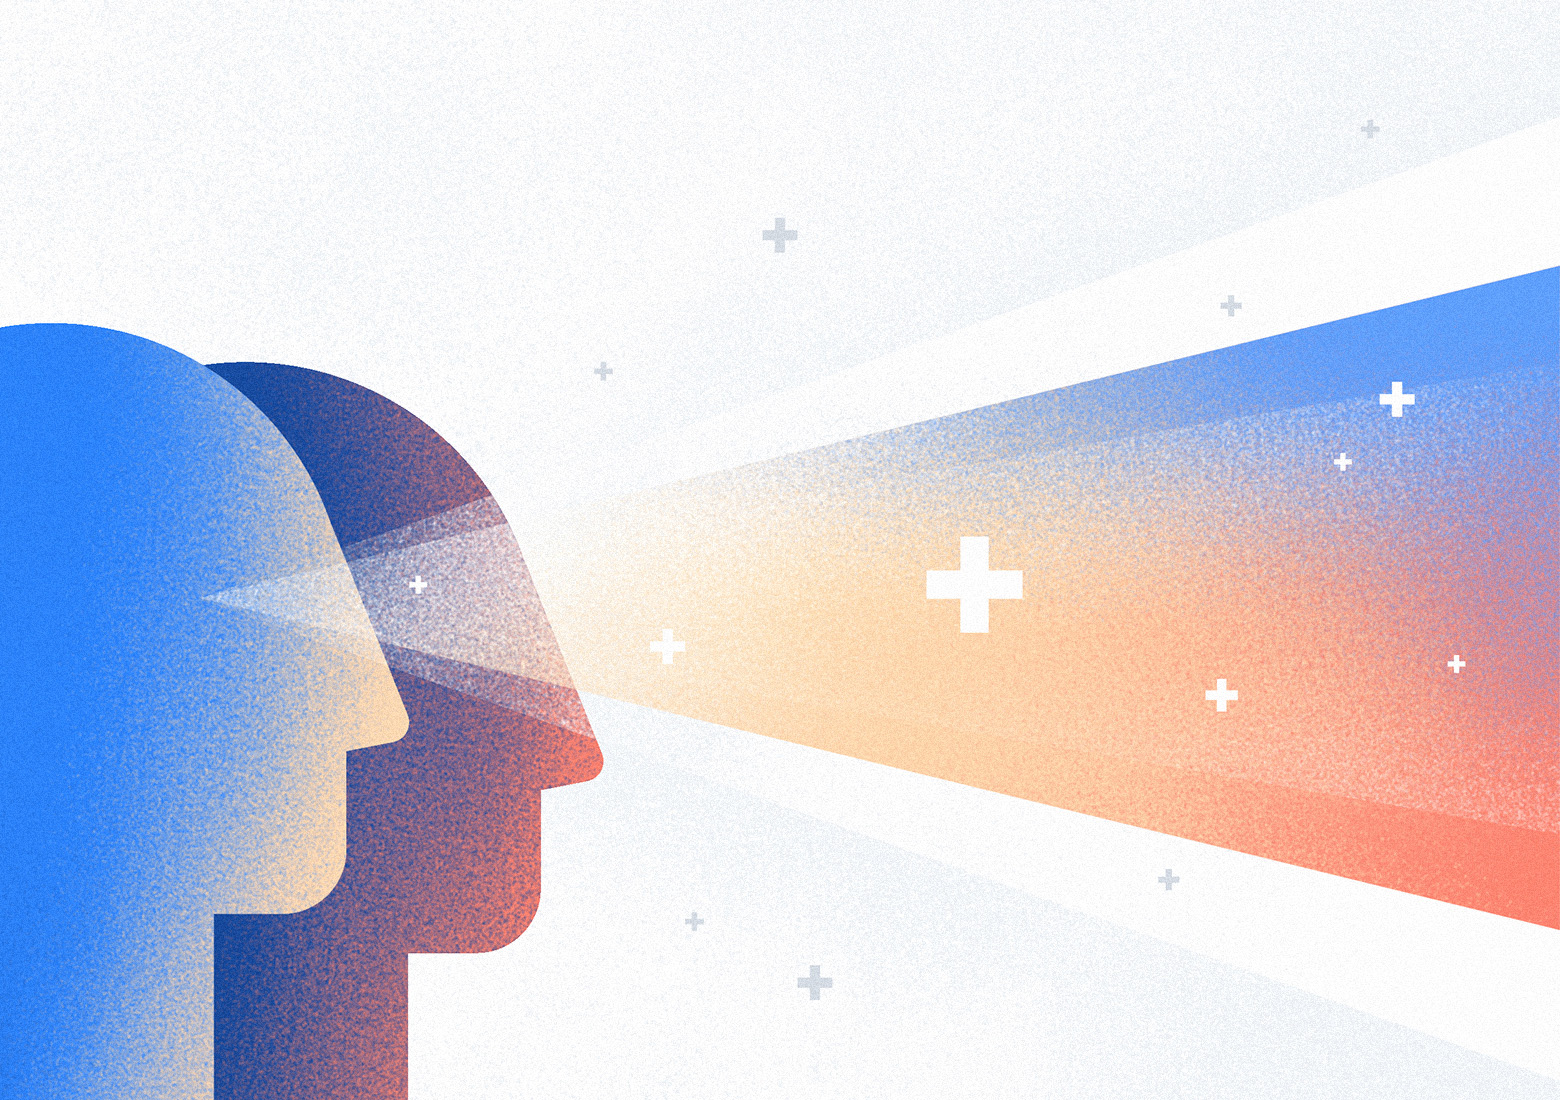 Digital healthcare solutions represent a new gateway to existing healthcare services. Illustration by Aga Więckowska.